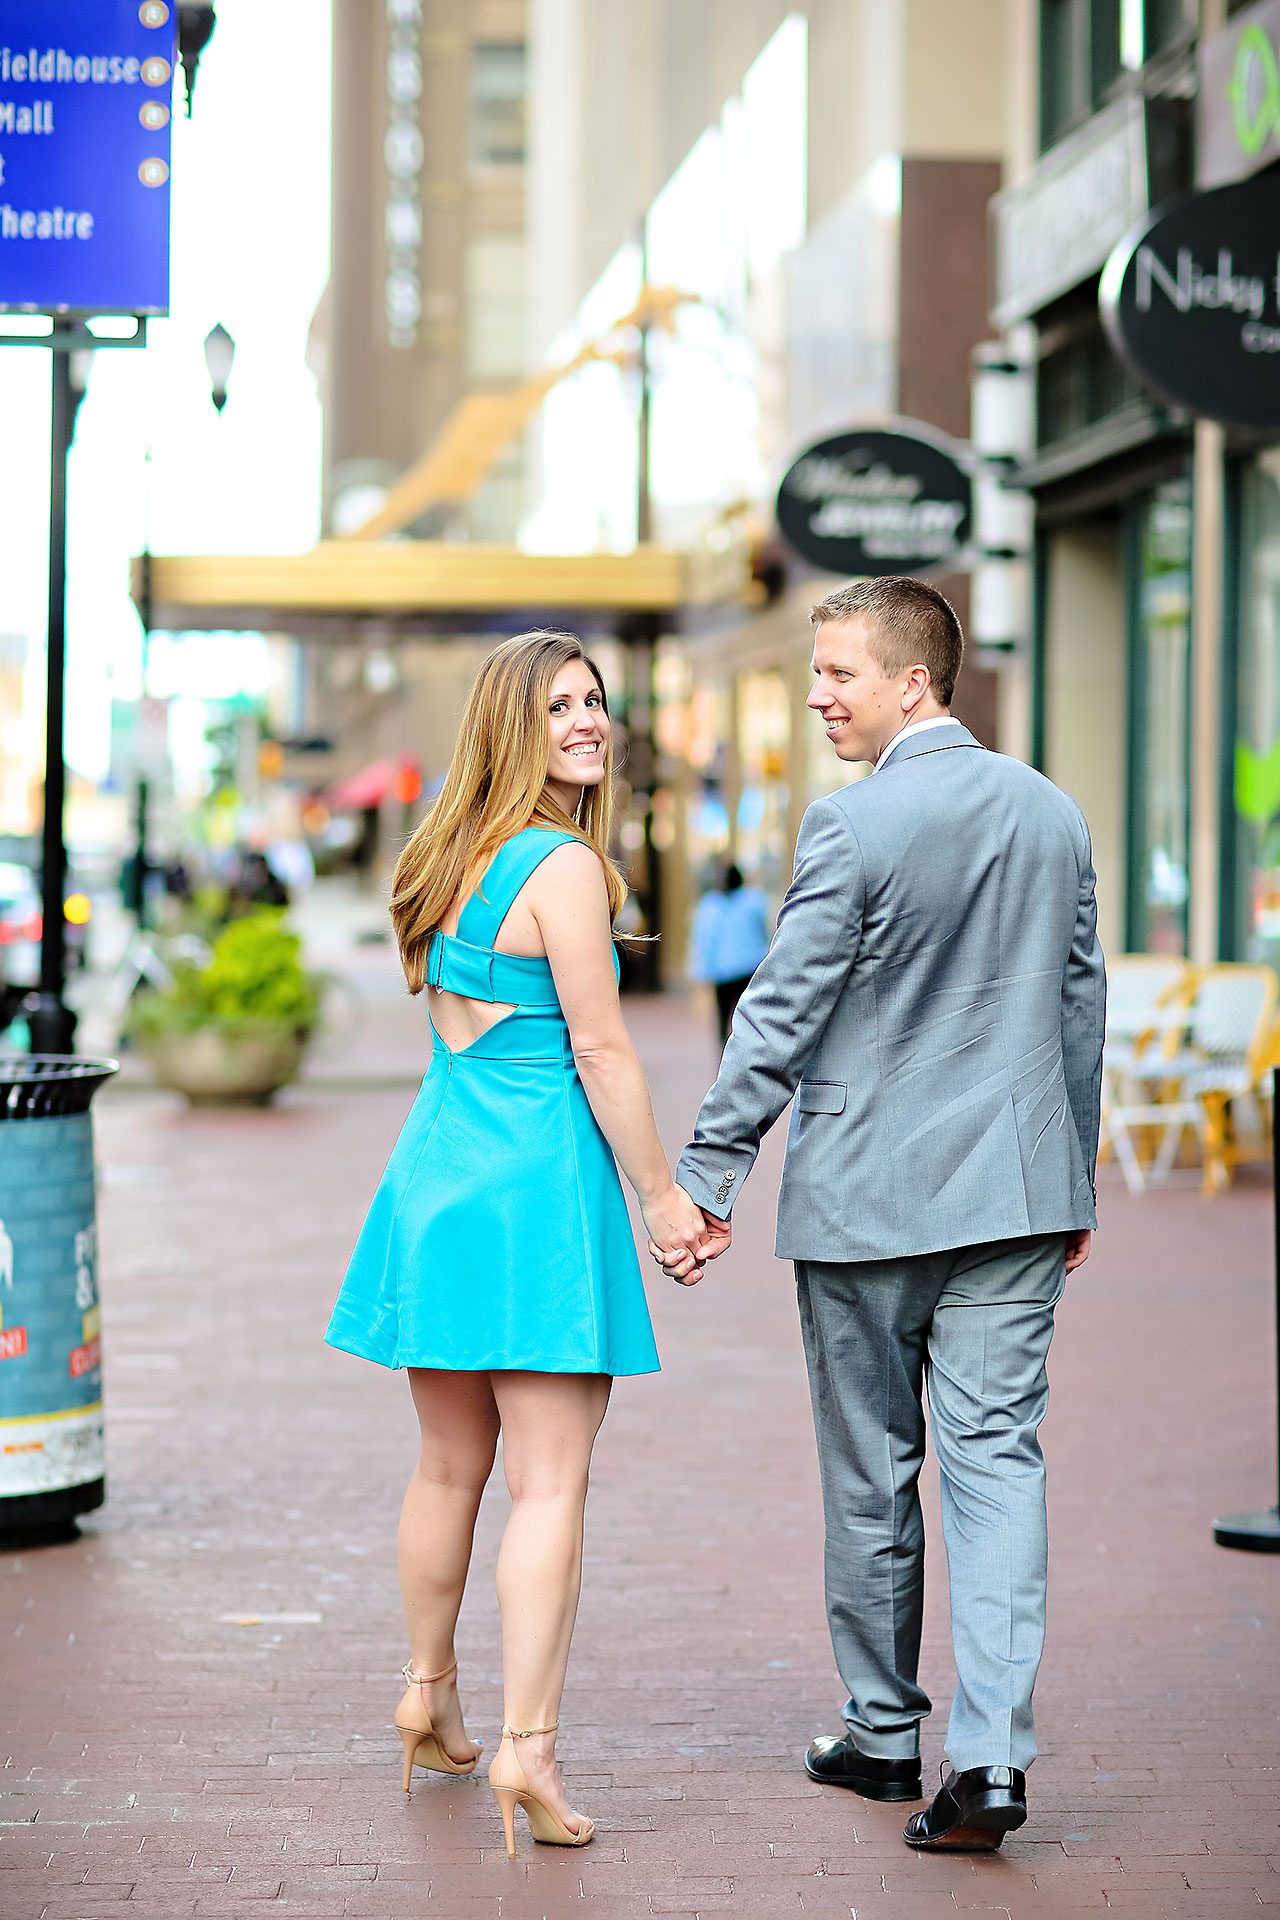 Chelsea Jeff Downtown Indy Engagement Session 130